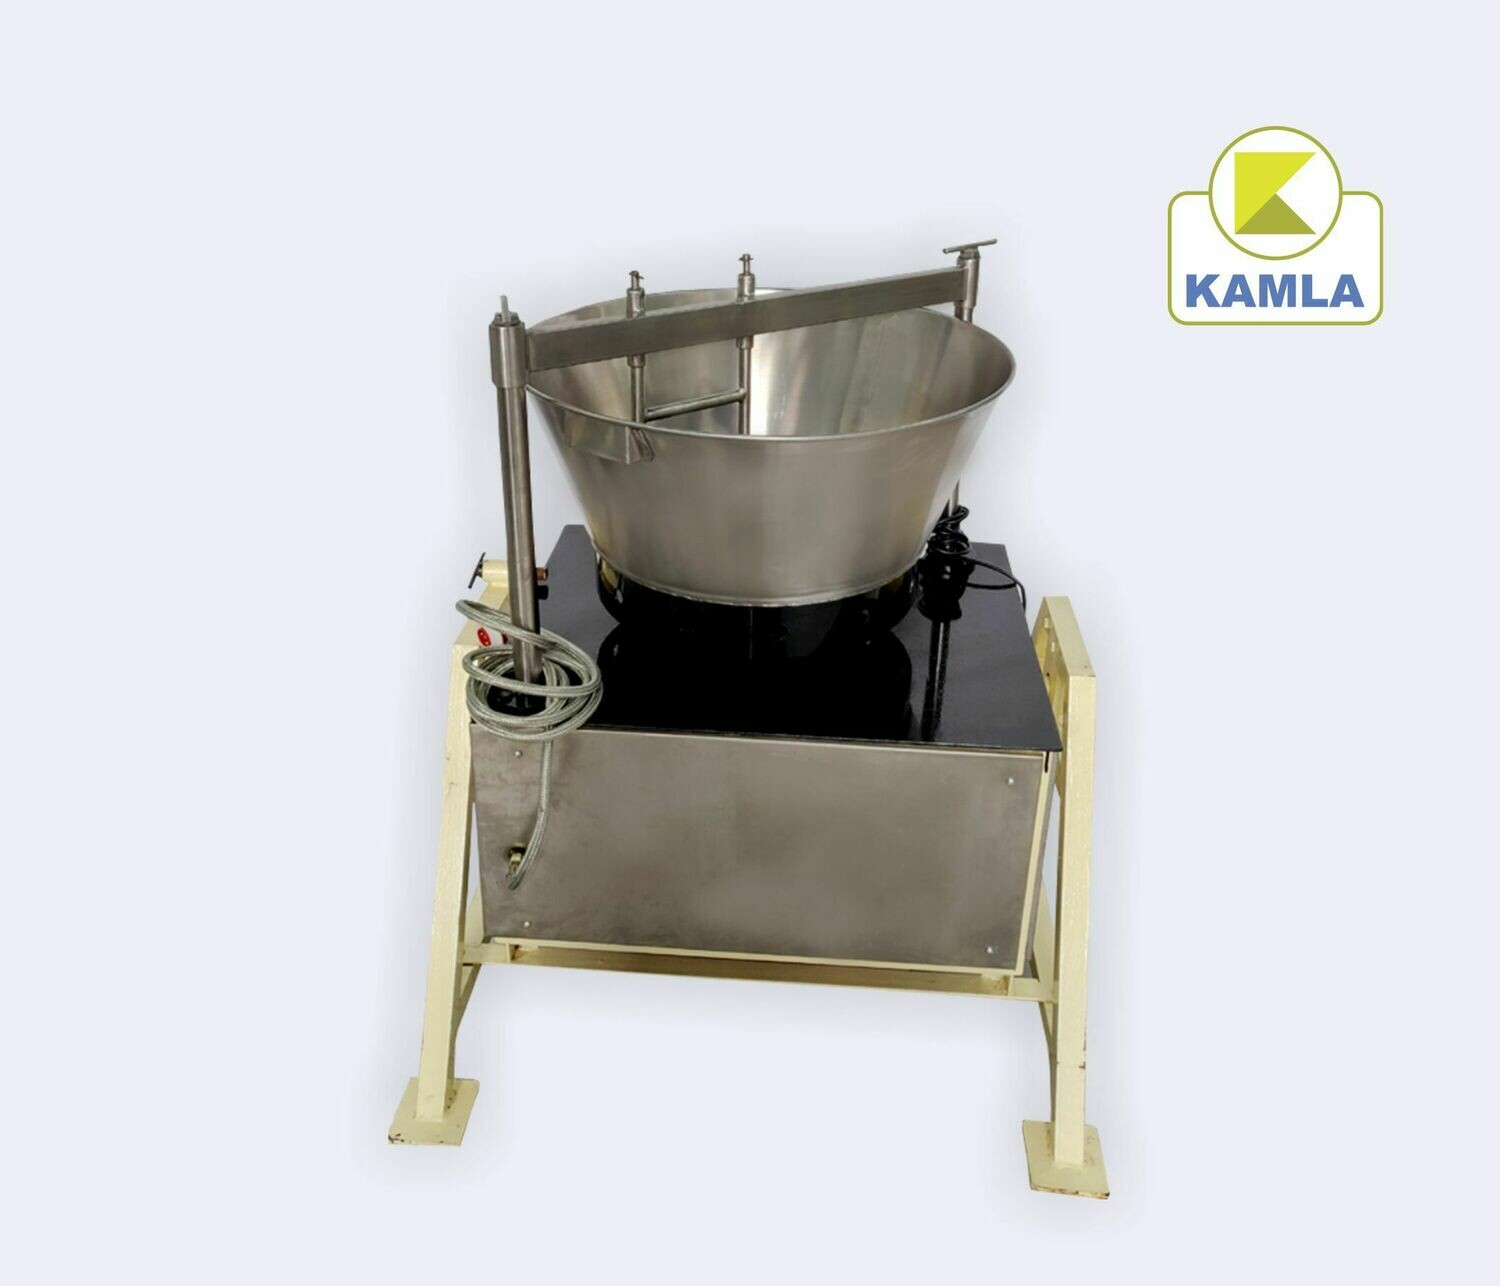 Mawa machine 70 ltr SS Body Tilting model